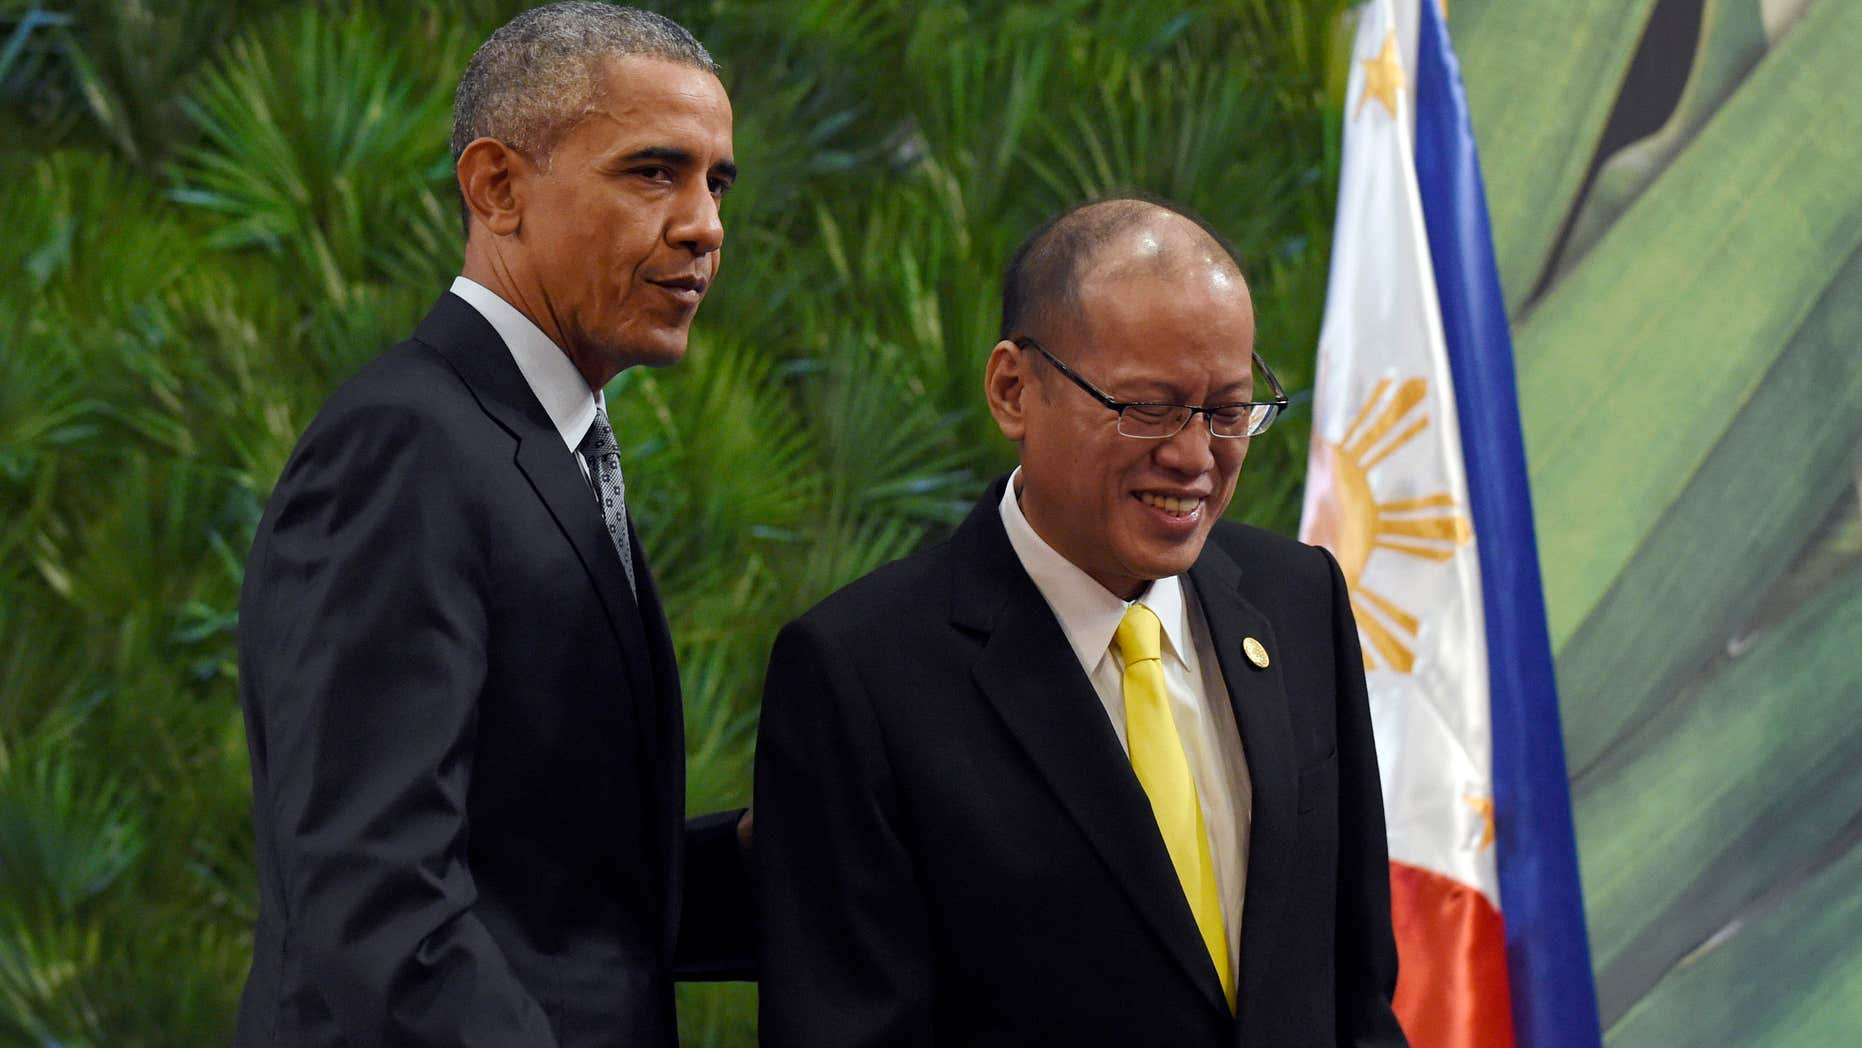 Nov. 18, 2015: President Barack Obama, left, and Philippines' President Benigno Aquino III, right, walk off of the stage after participating in a news conference in Manila, Philippines ahead of the start of the Asia-Pacific Economic Cooperation summit.